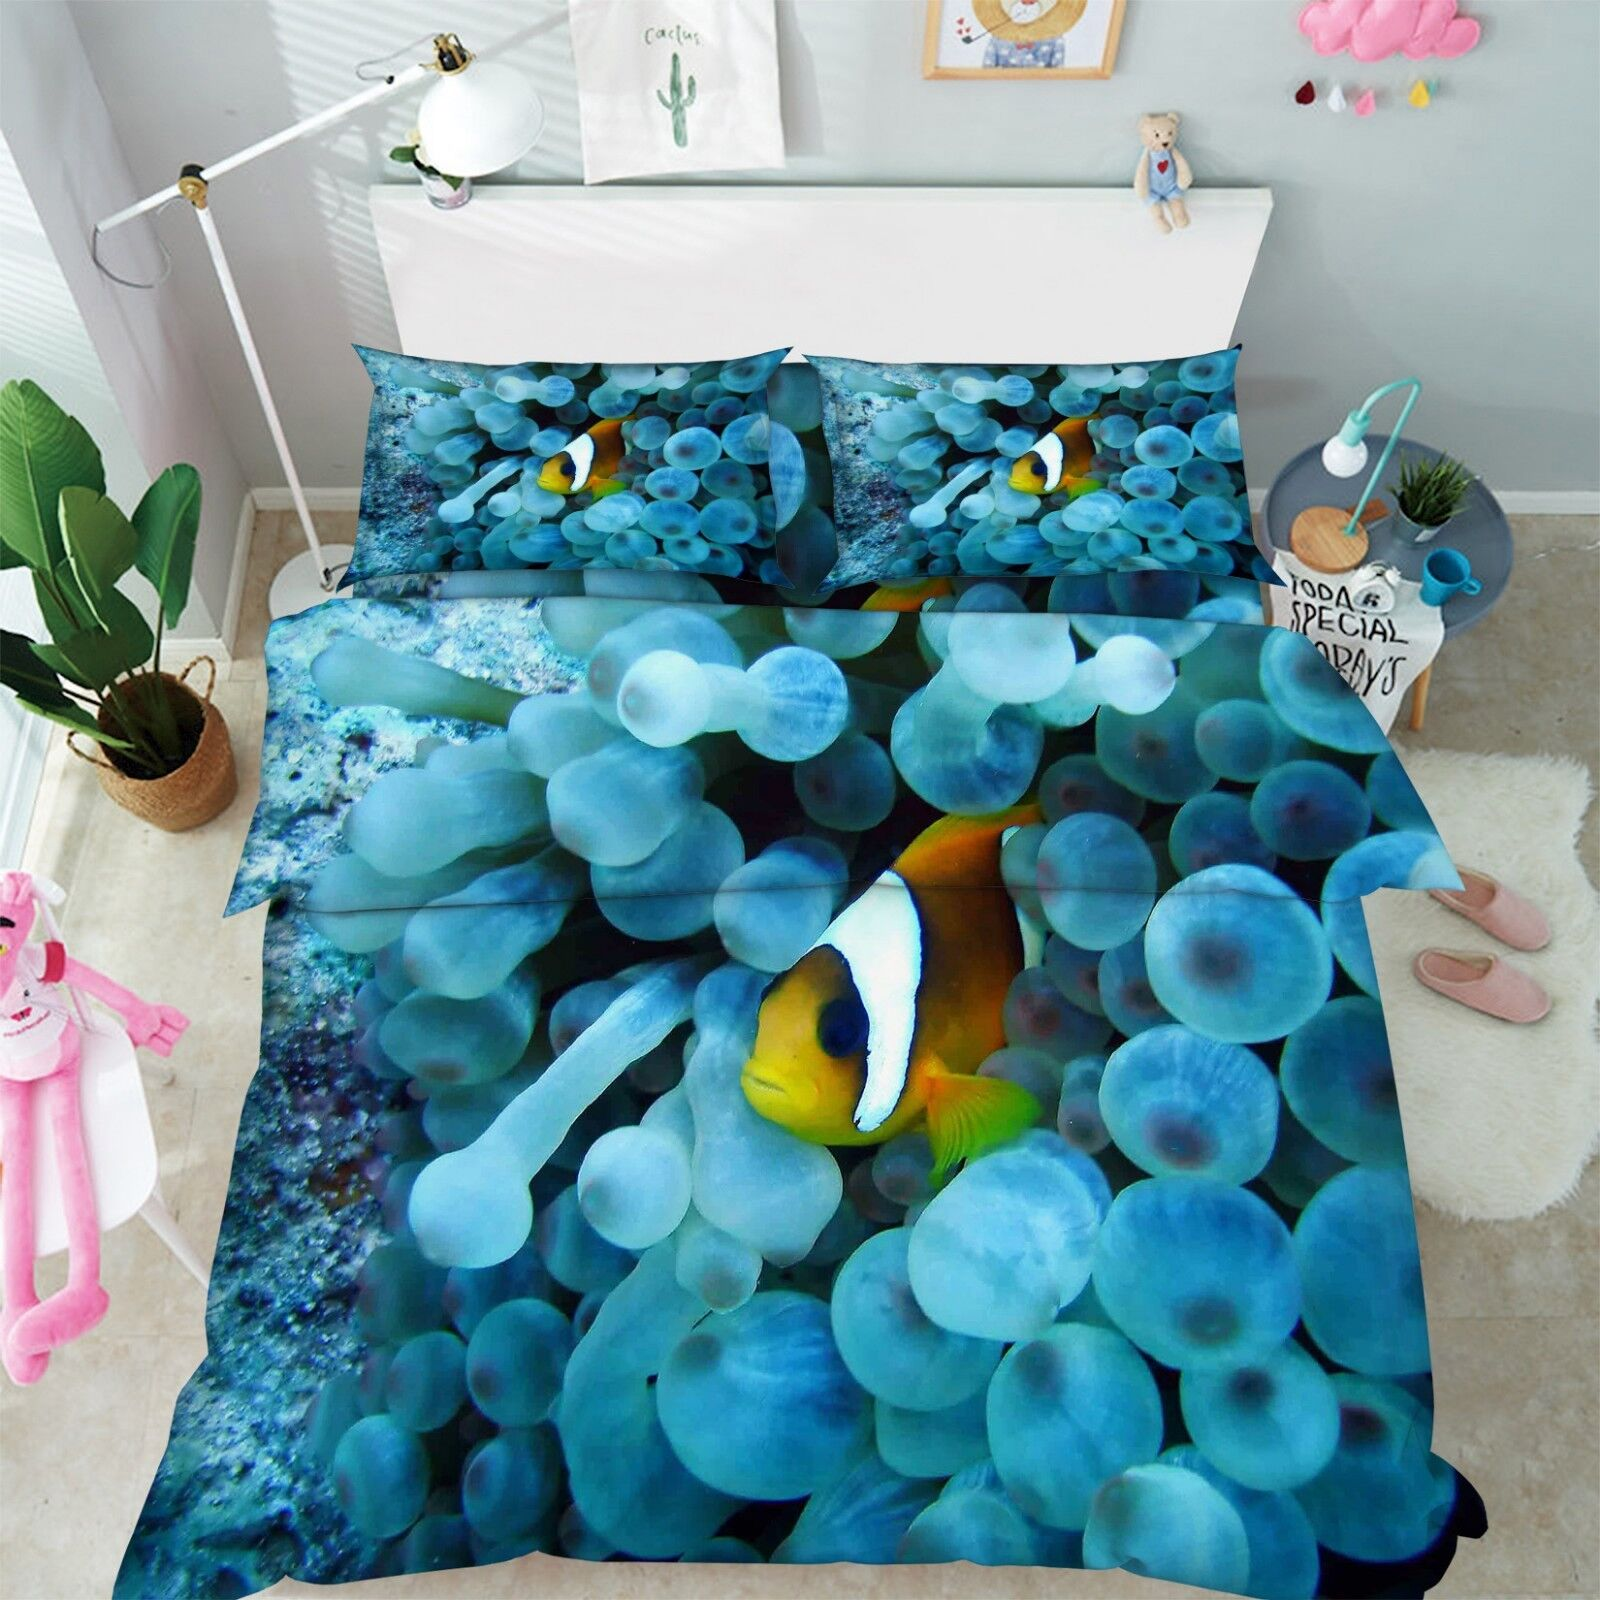 3D Jellyfish 56 Bed Pillowcases Quilt Duvet Cover Set Single Queen King UK Lemon